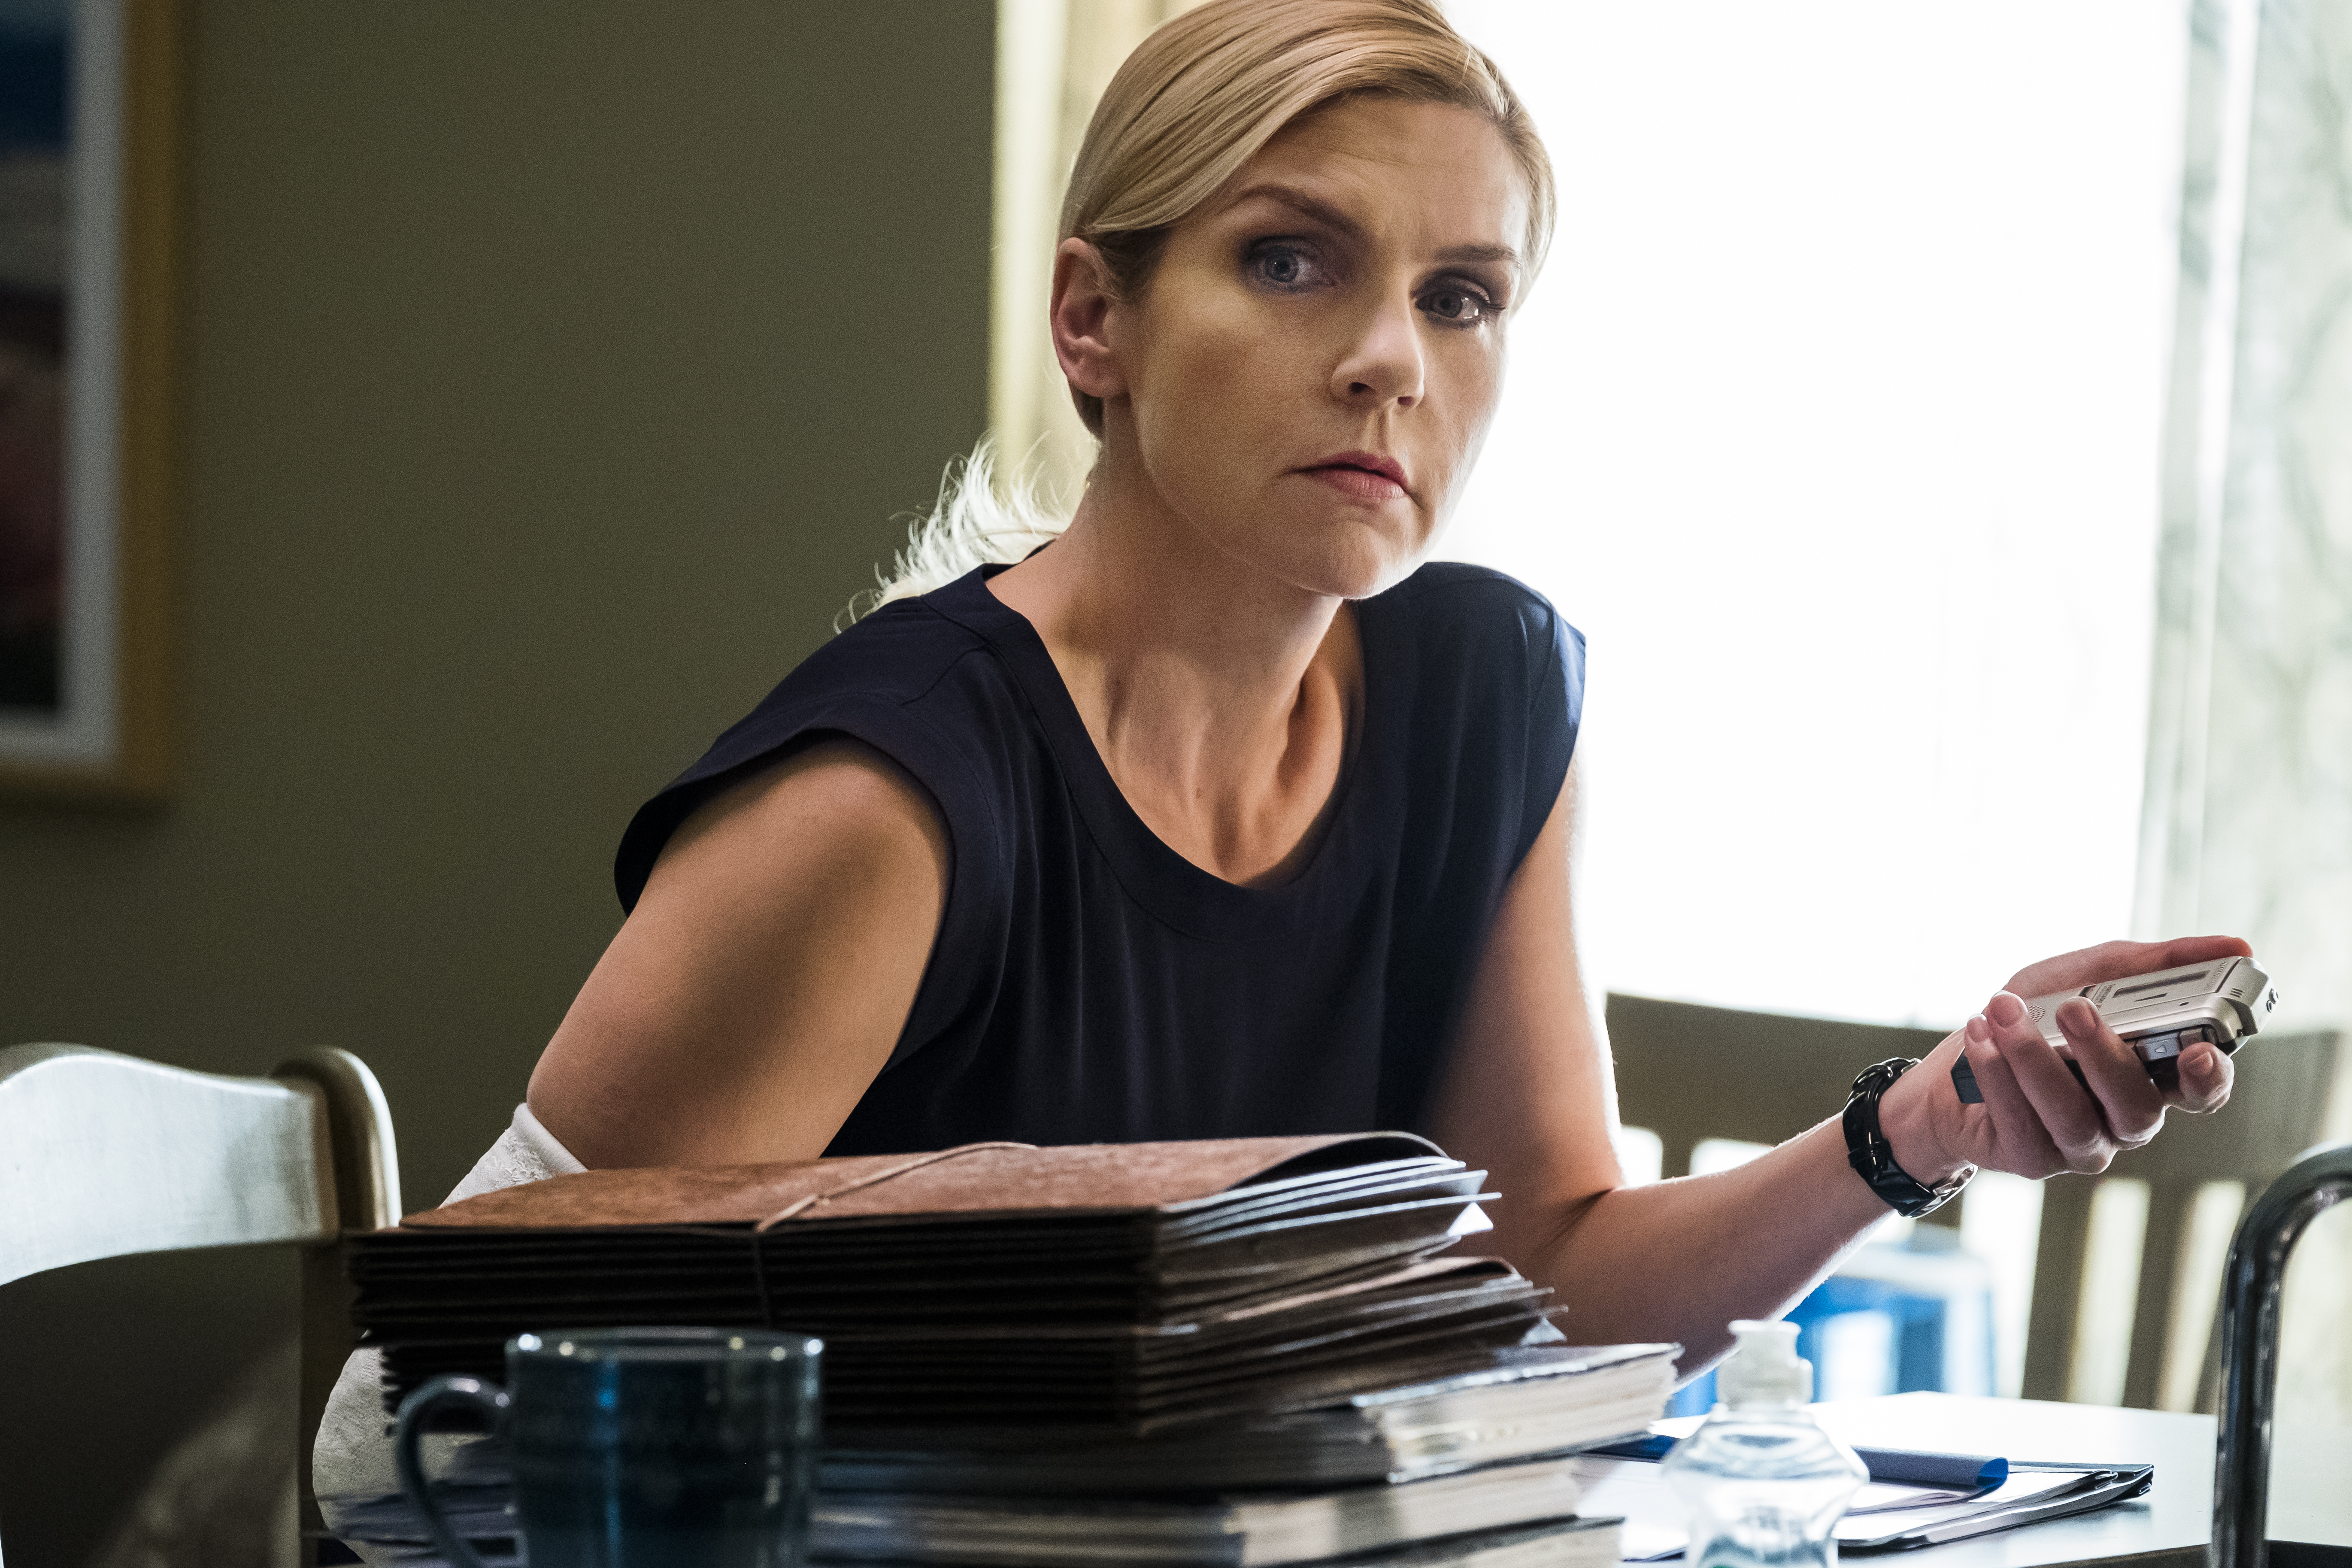 Rhea Seehorn, the Beating Heart of 'Better Call Saul', Accepts Her Uncertain Fate